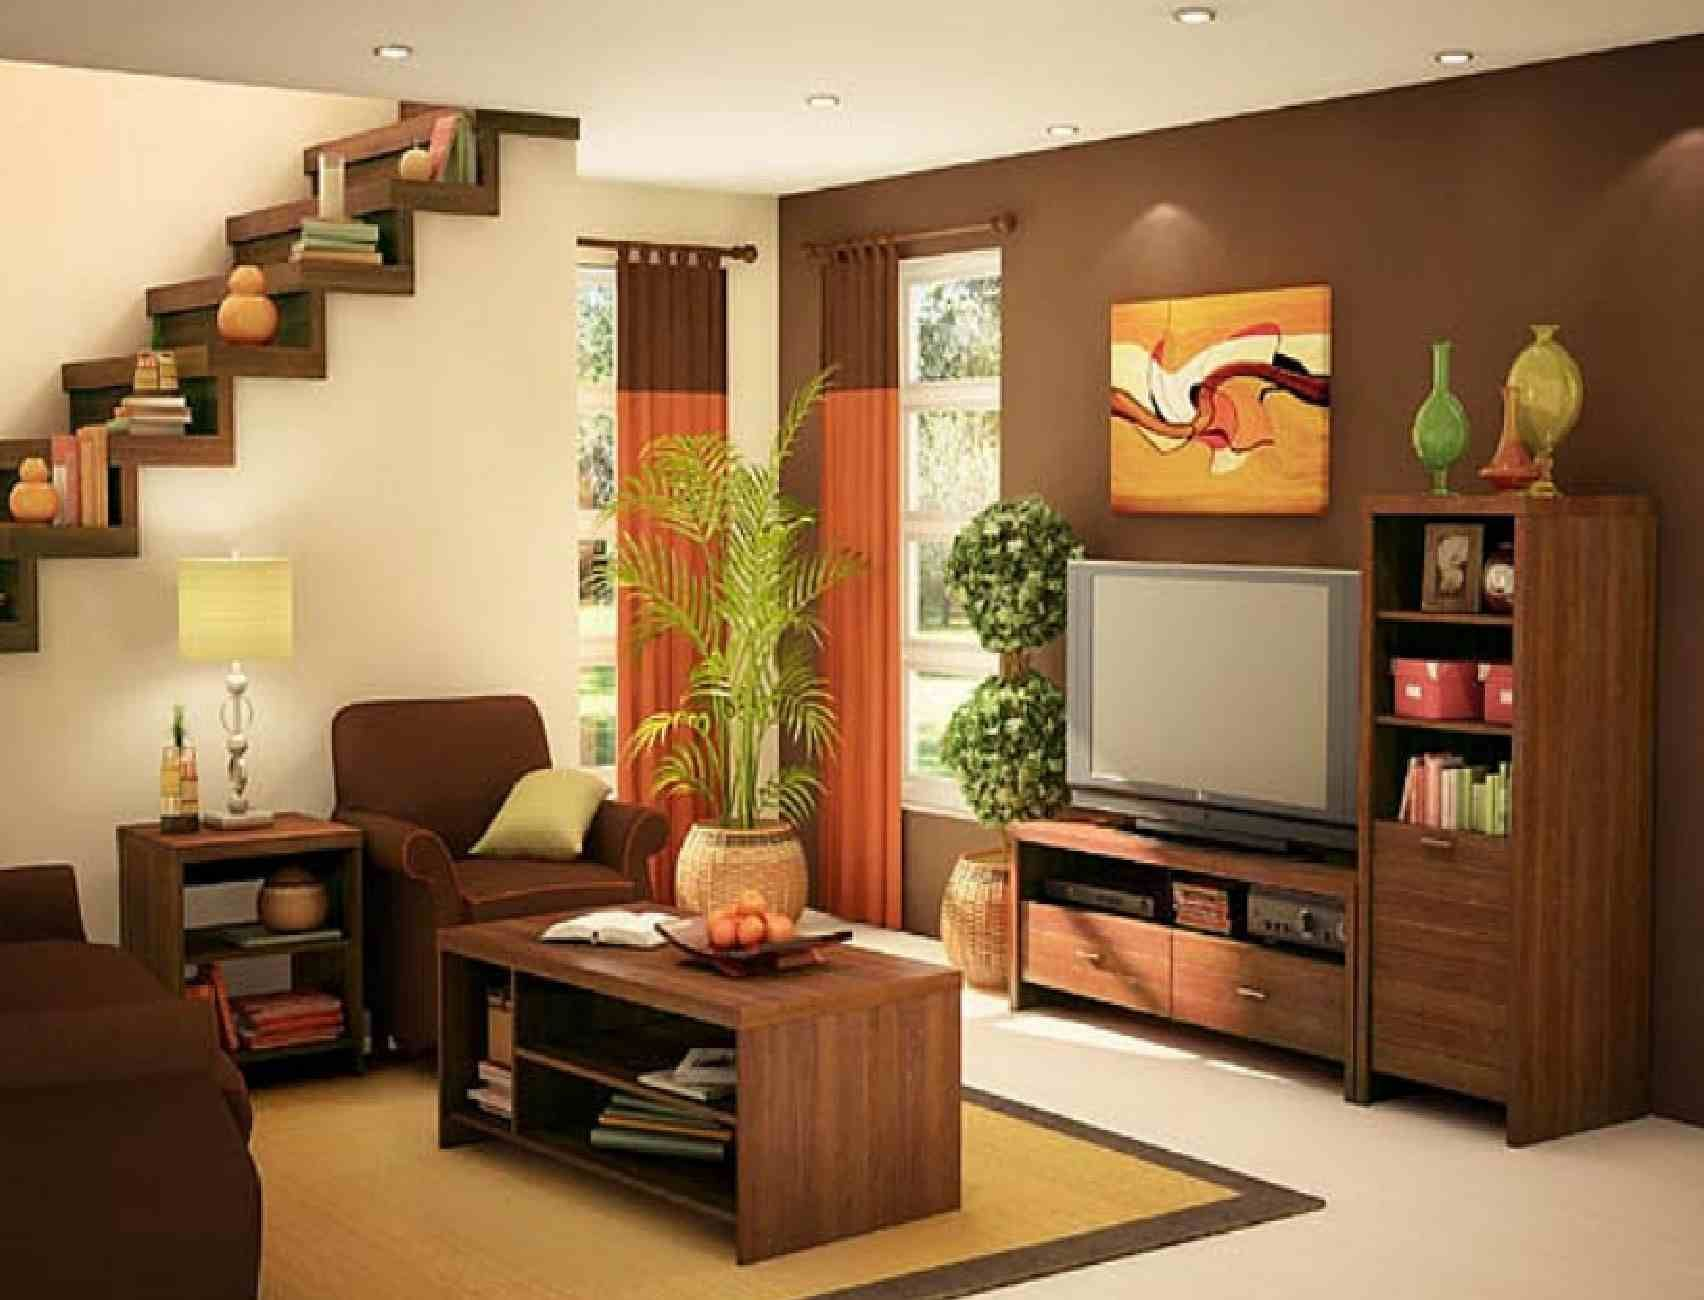 images of living rooms with tan walls | Living Room Images and ...